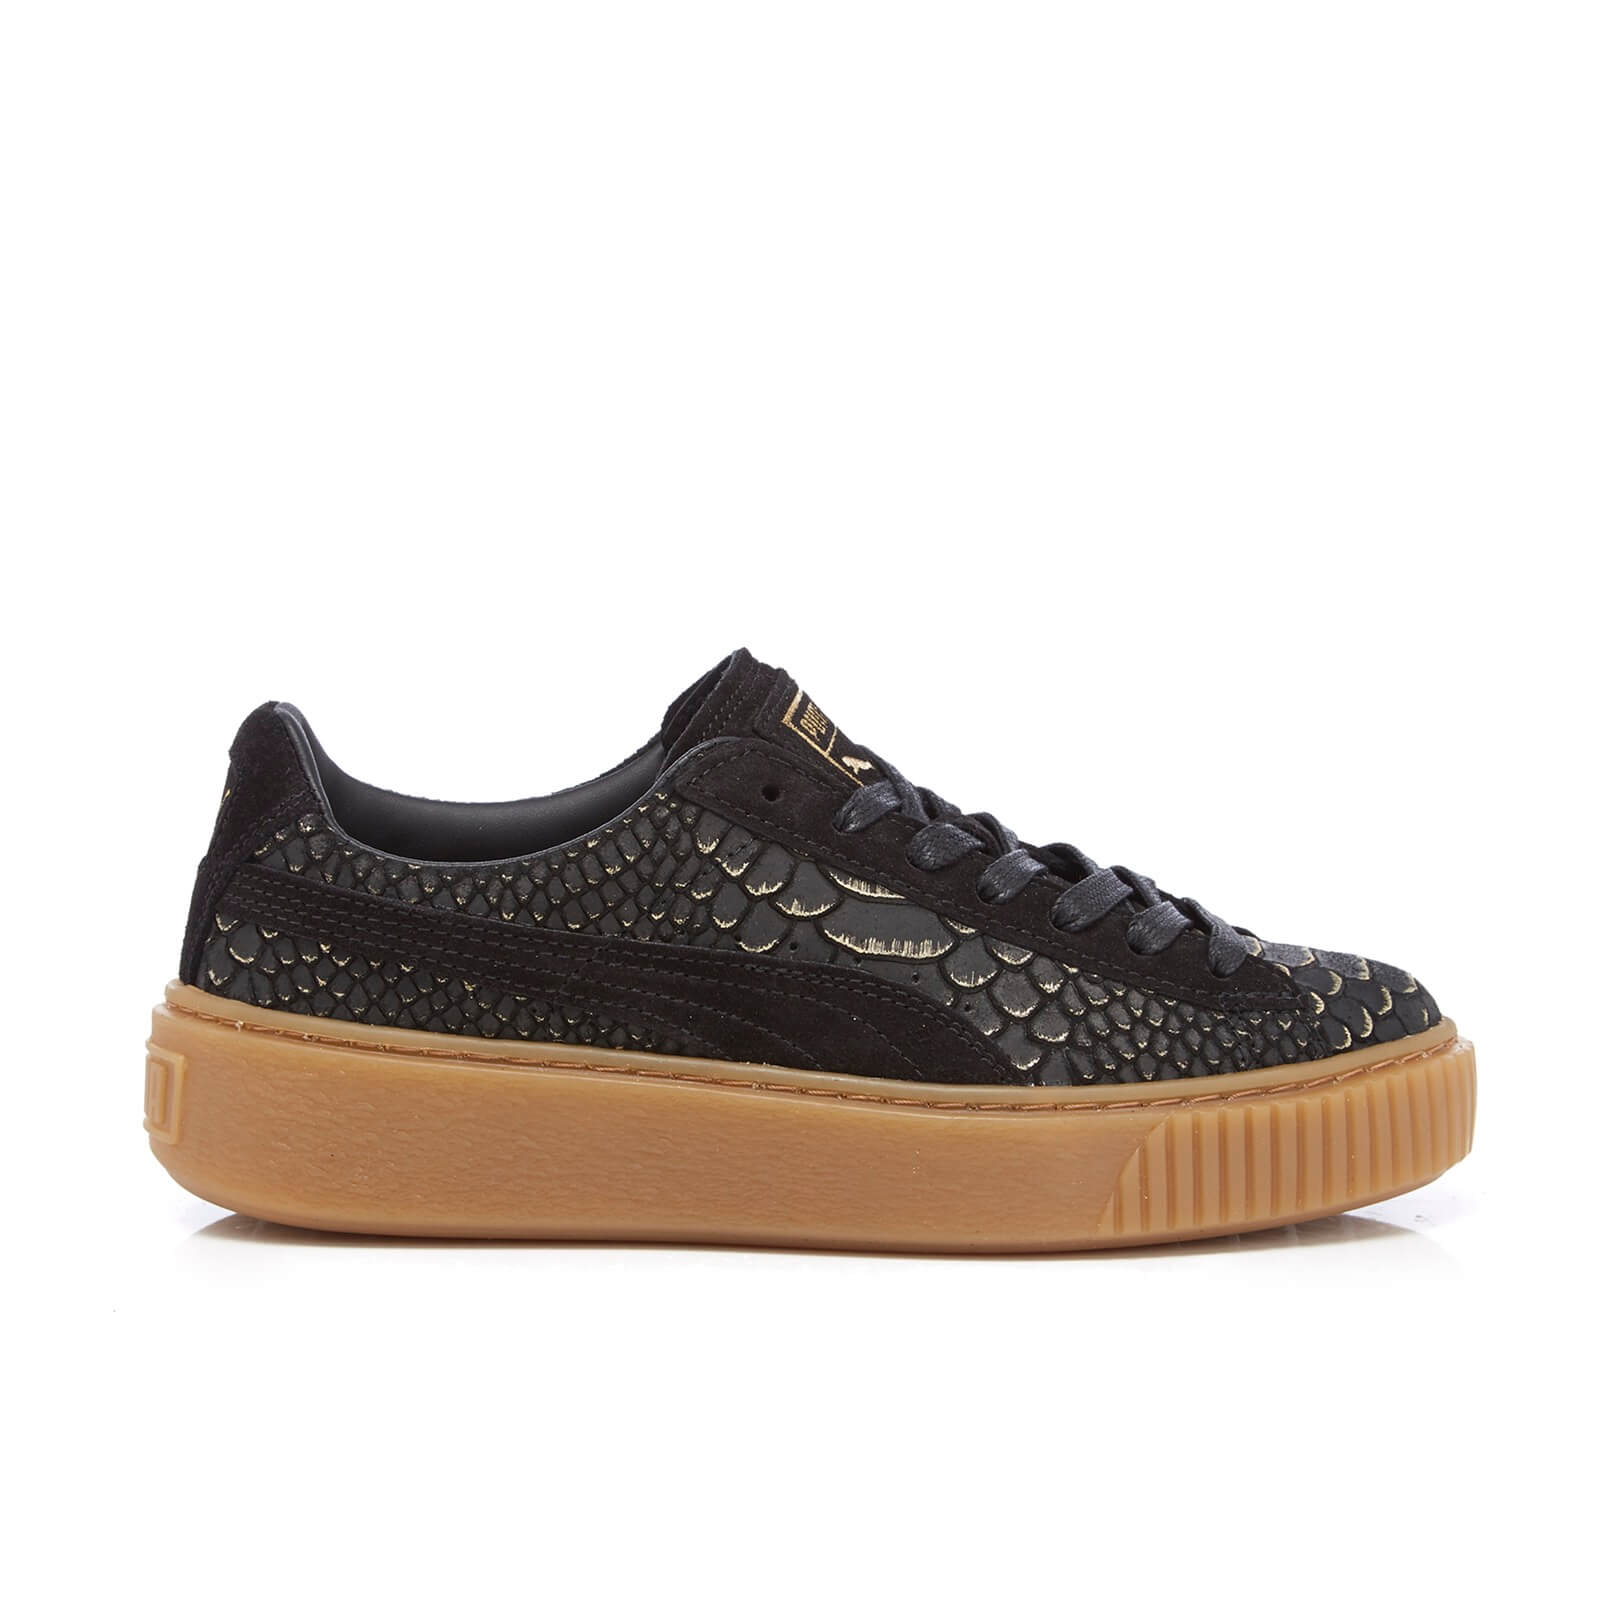 517b406c293f Puma Women s Basket Platform Exotic Skin Trainers - Black Gold - Free UK  Delivery over £50